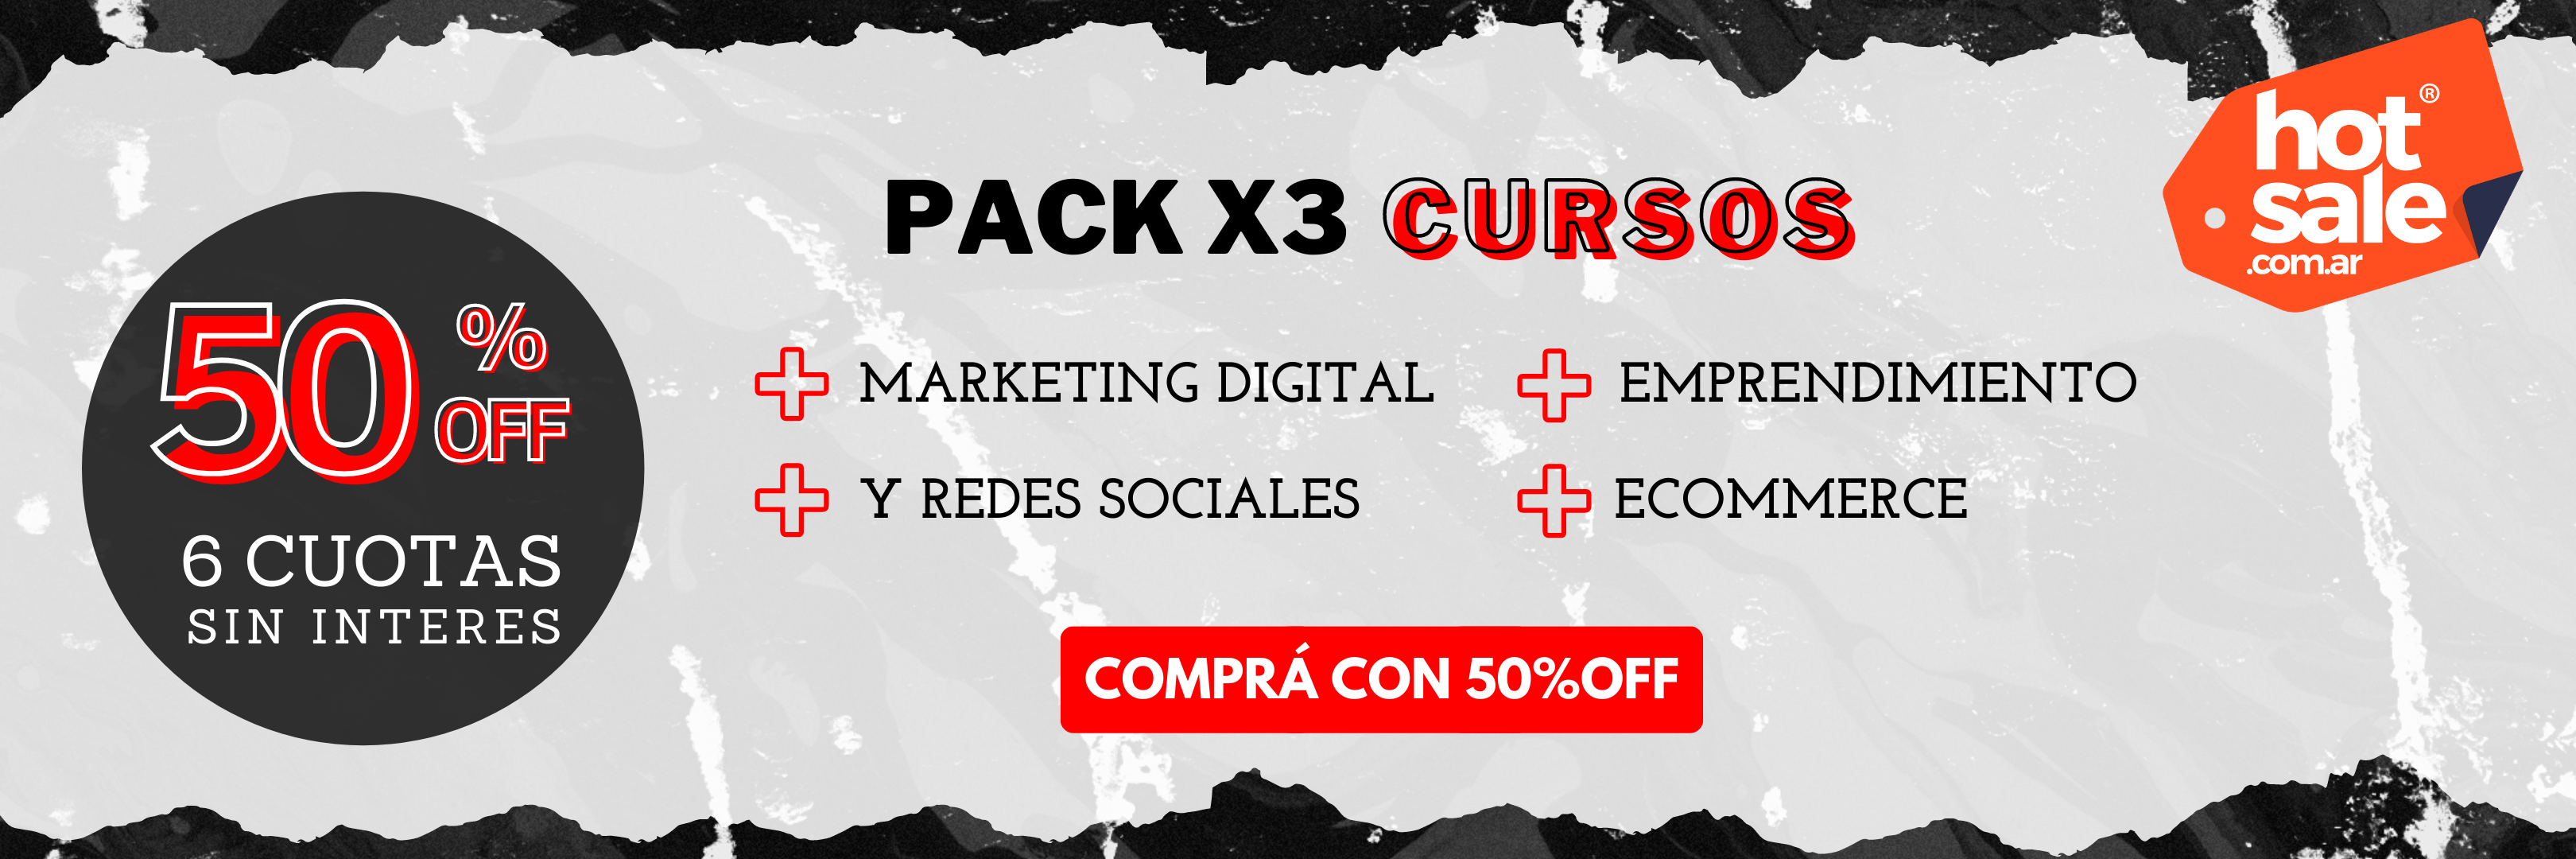 PACK x 3: Marketing Digital + Redes Sociales + eCommerce + Emprendimiento